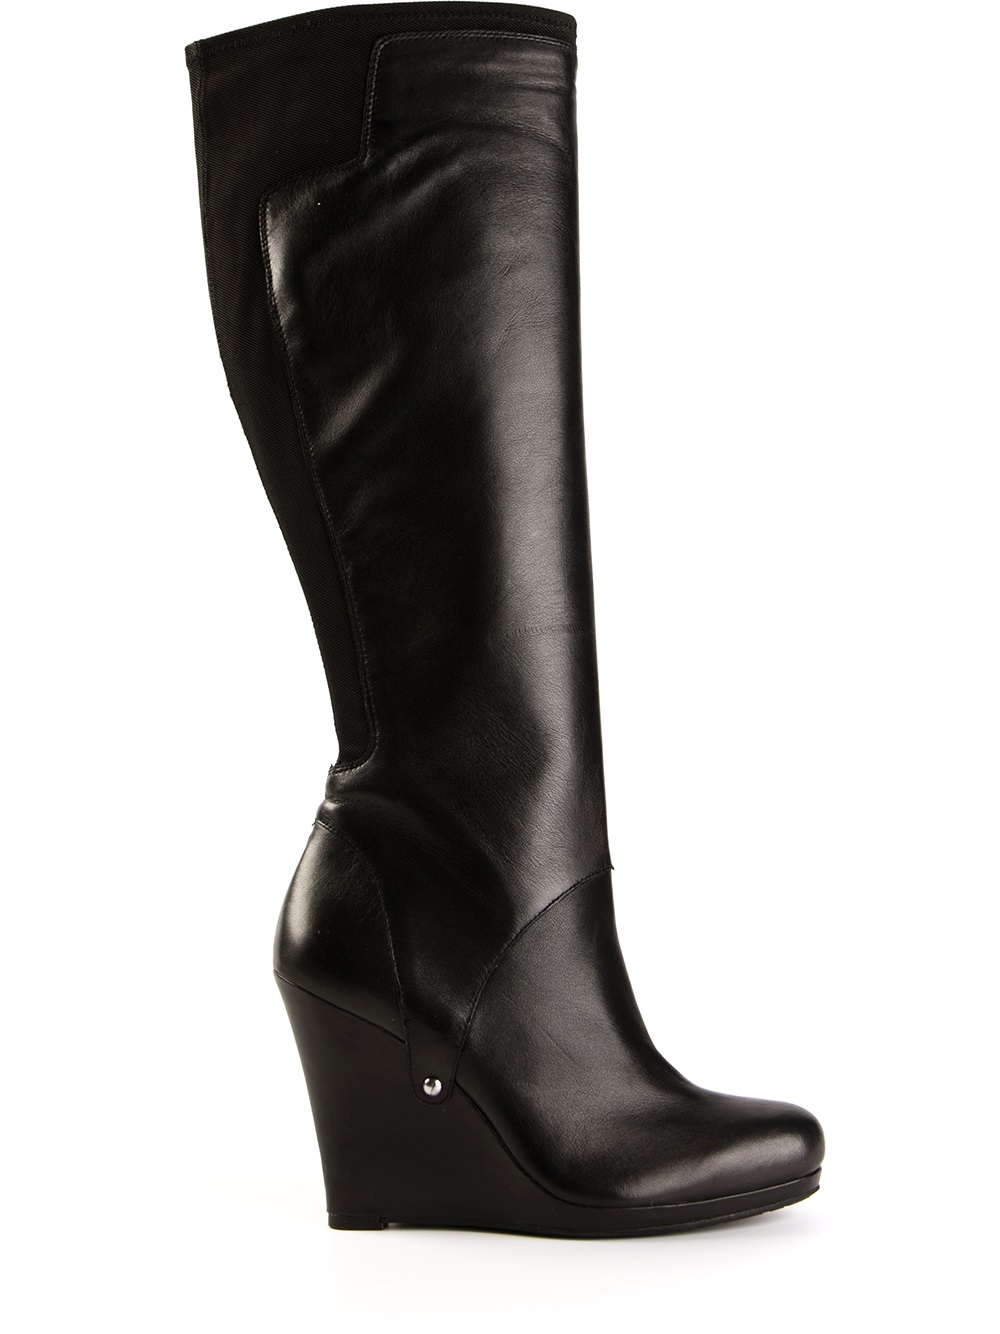 black wedge boots gallery ATHOZQF